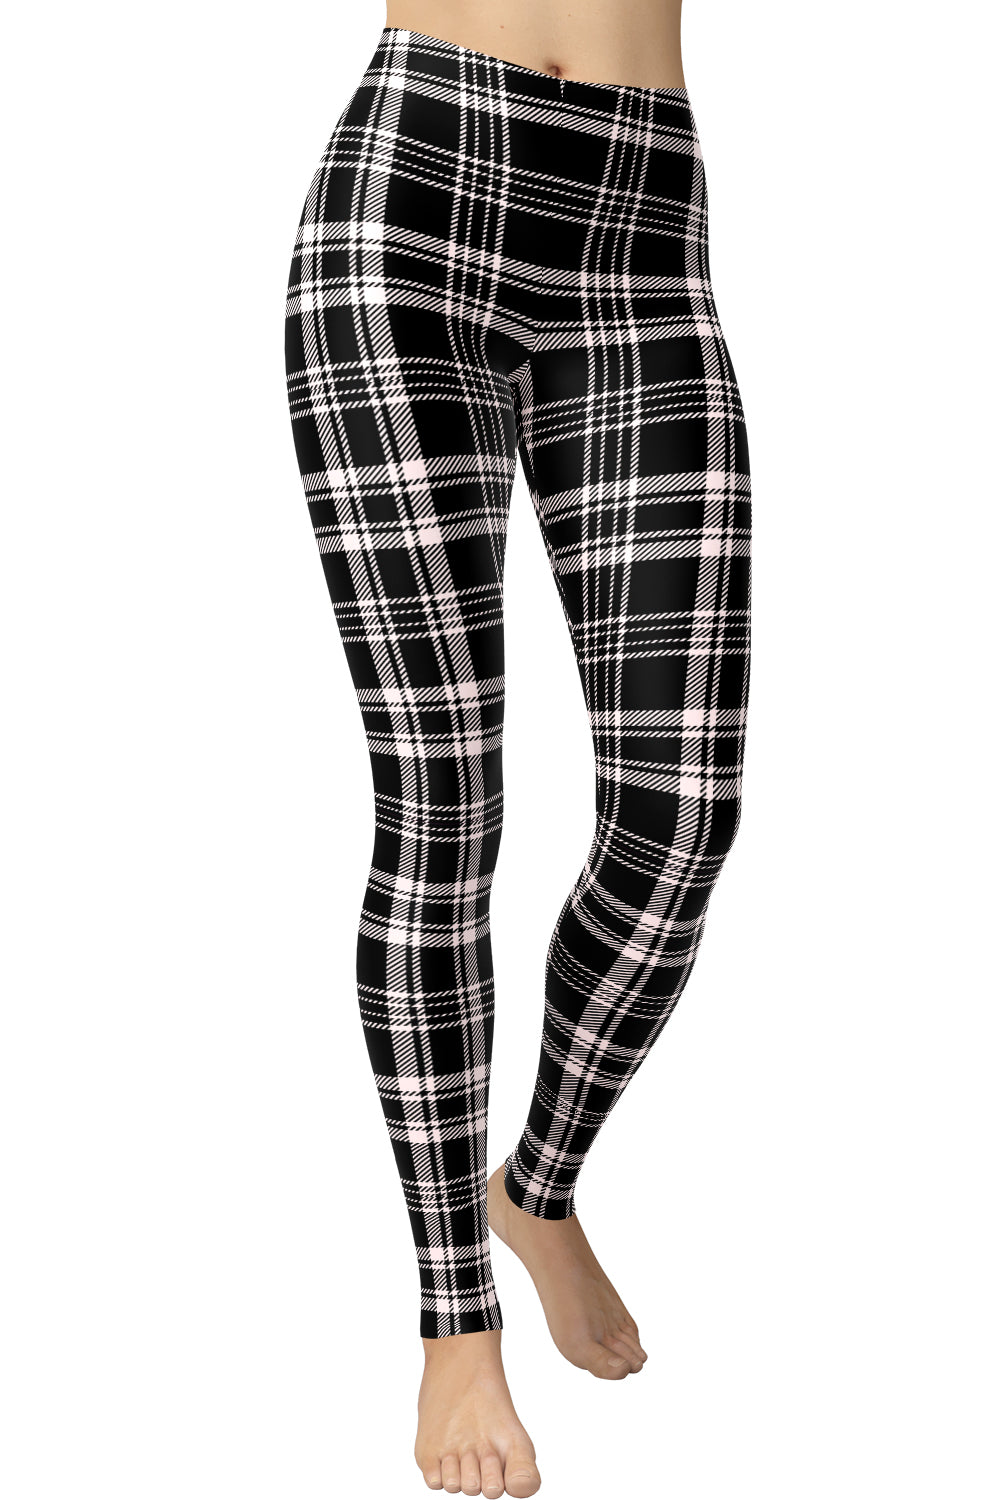 Printed Brushed Leggings - Plaid Dark Road Lanes